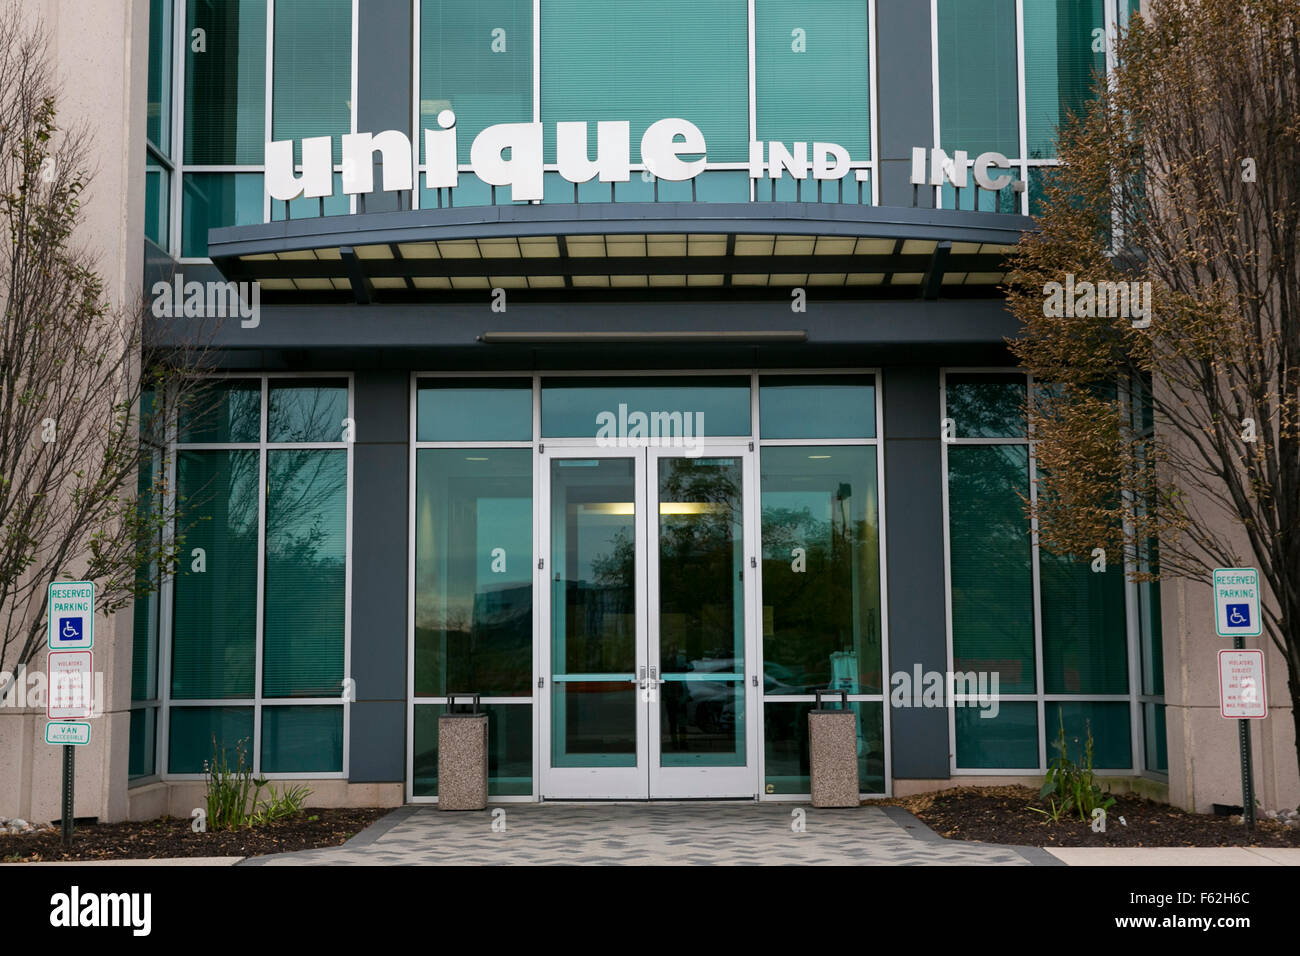 A logo sign outside of the headquarters of Unique Industries, Inc., in Philadelphia, Pennsylvania on November 7, - Stock Image